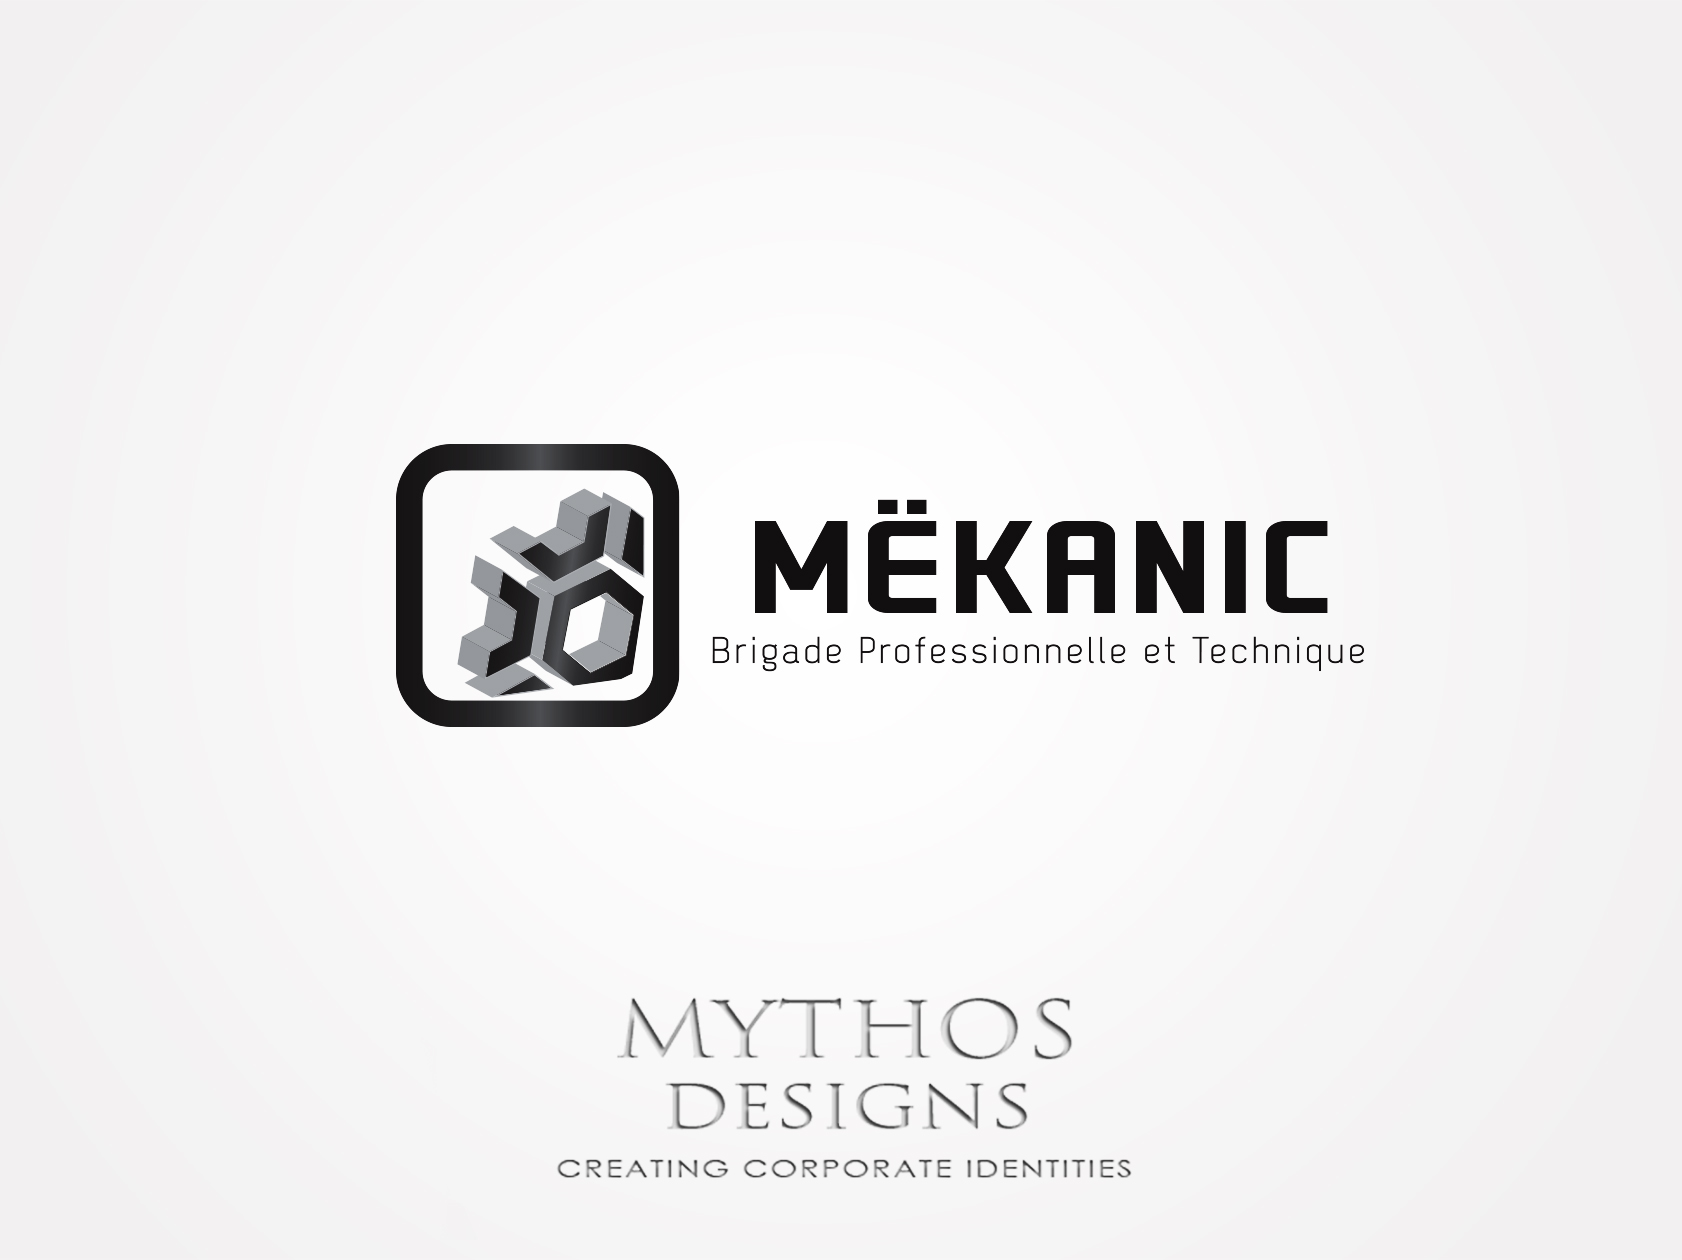 Logo Design by Mythos Designs - Entry No. 337 in the Logo Design Contest Creative Logo Design for MËKANIC - Professional and technical squad.